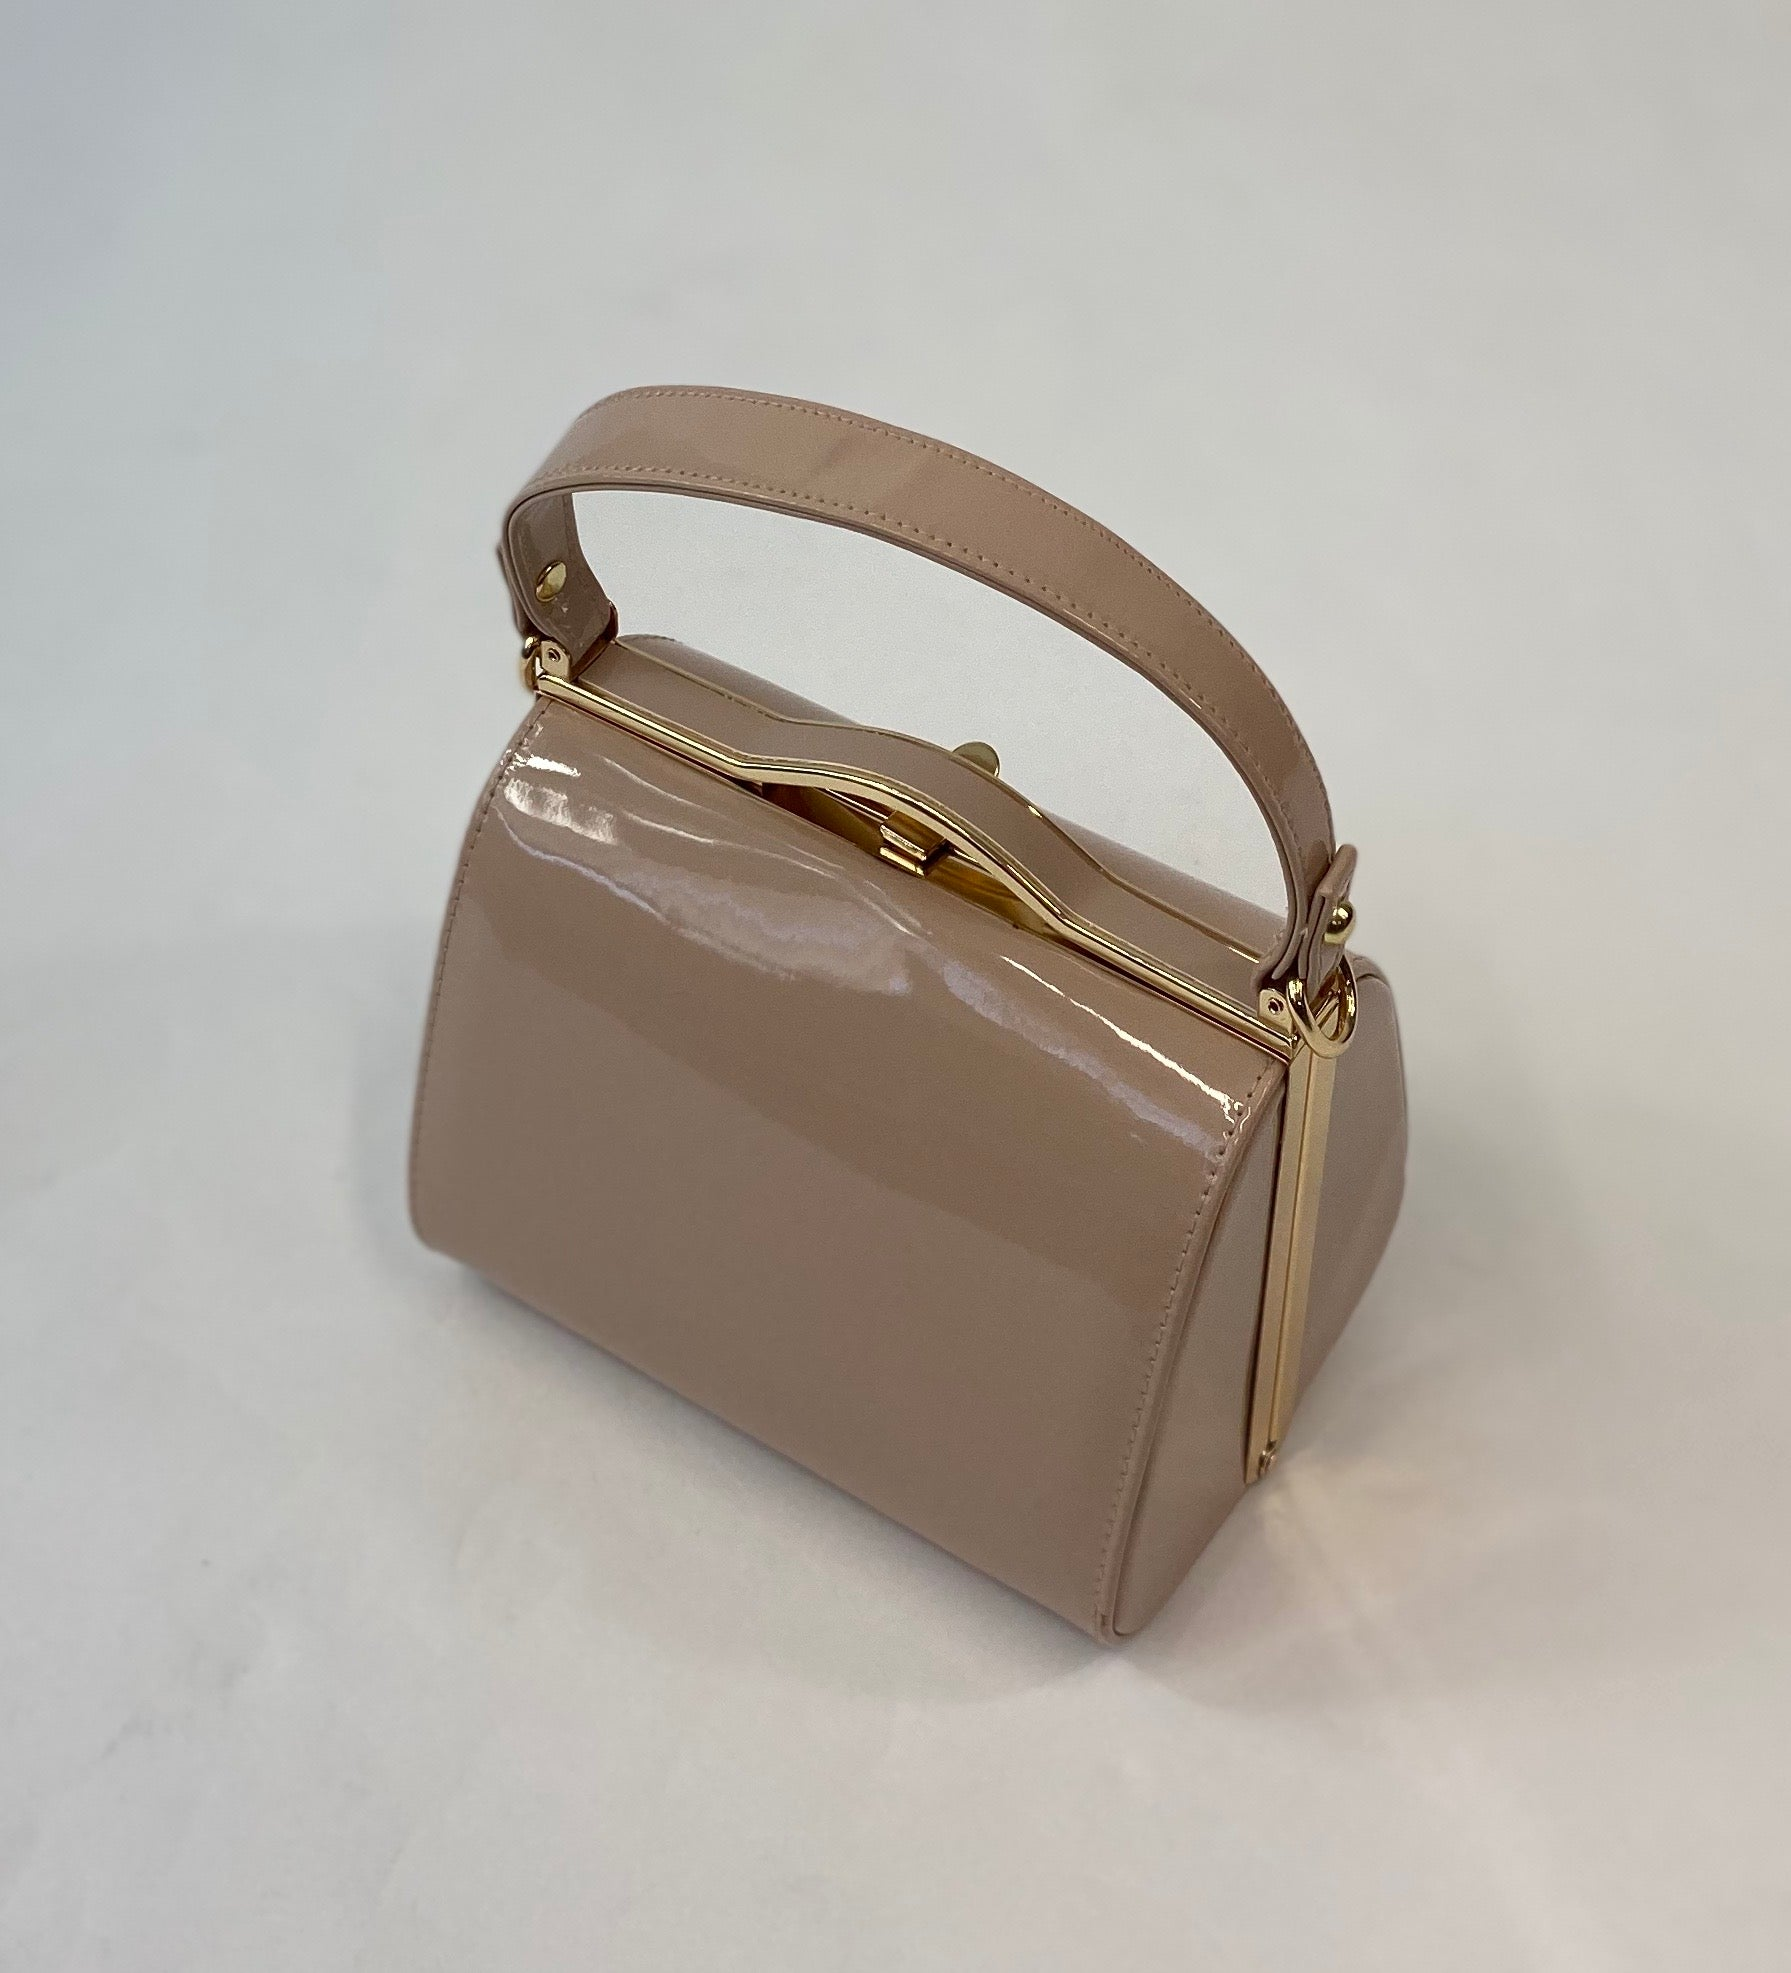 1950s Handbags, Purses, and Evening Bag Styles Vintage Inspired Kelly Hand Bag In classic Nude £39.00 AT vintagedancer.com